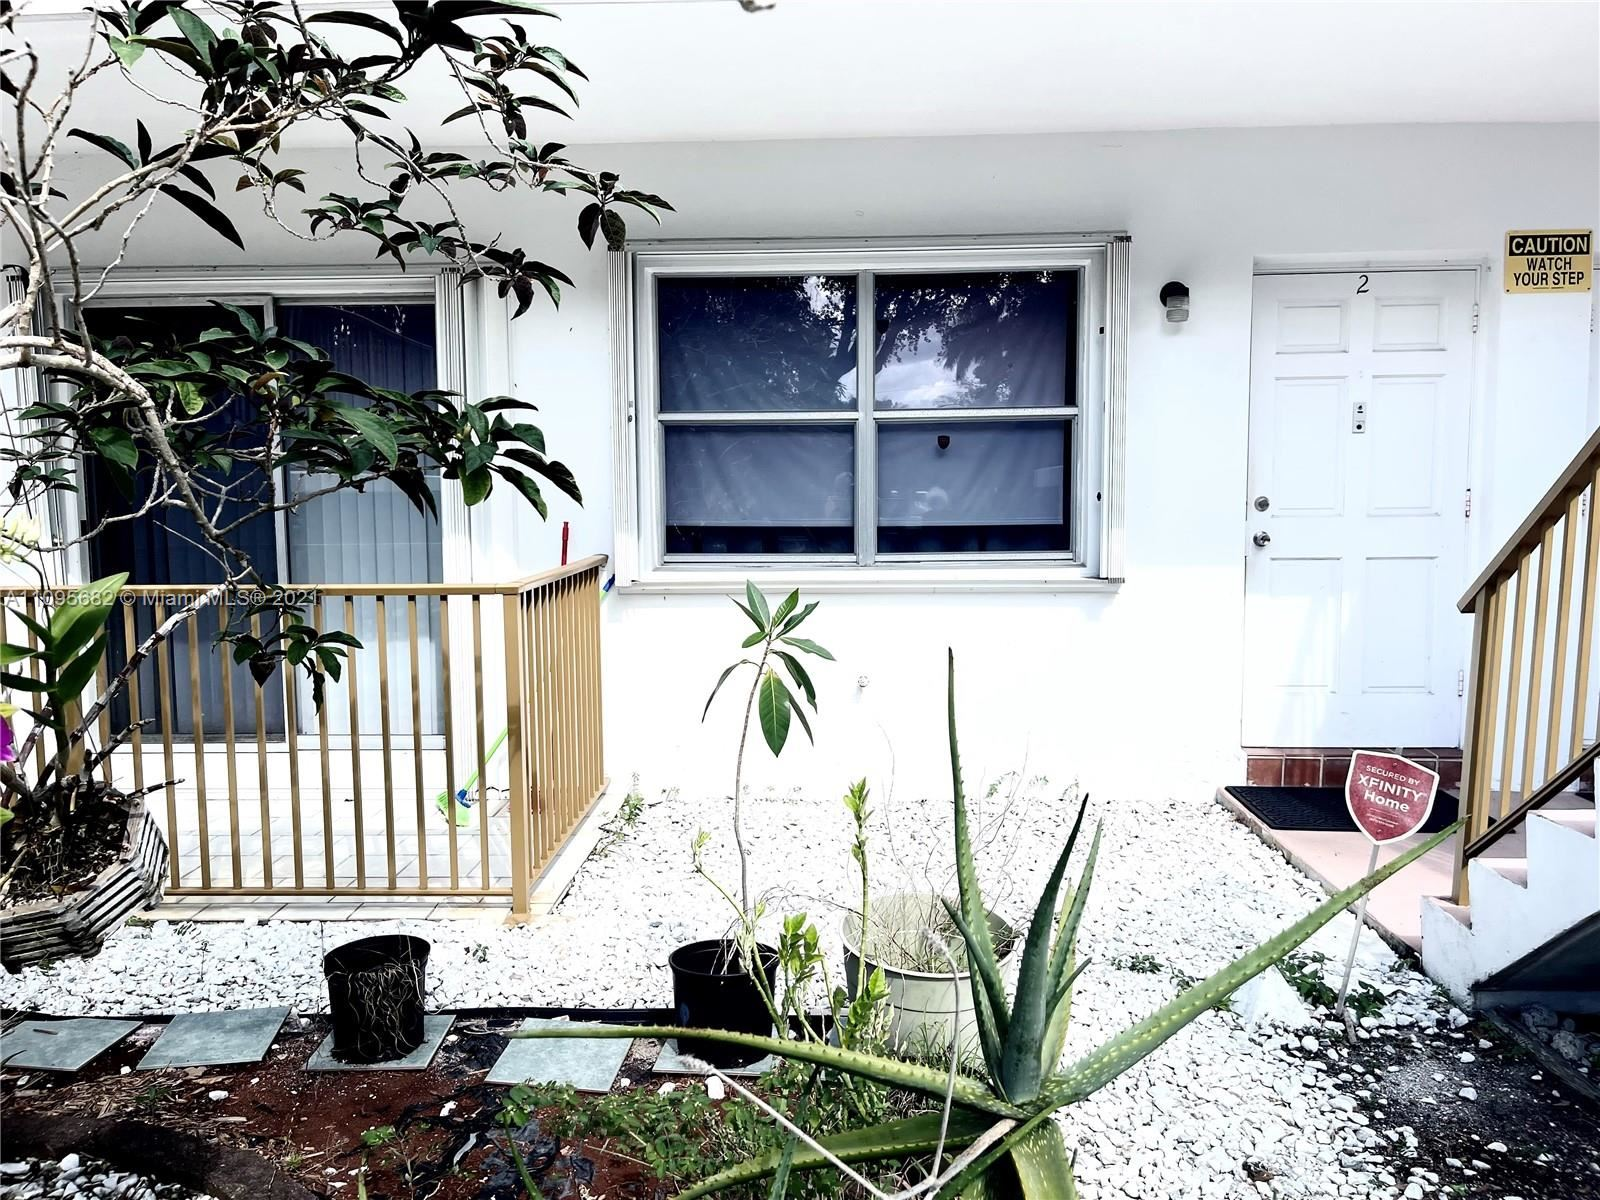 2245 Fillmore St #2, Hollywood, FL 33020 - #: A11095682